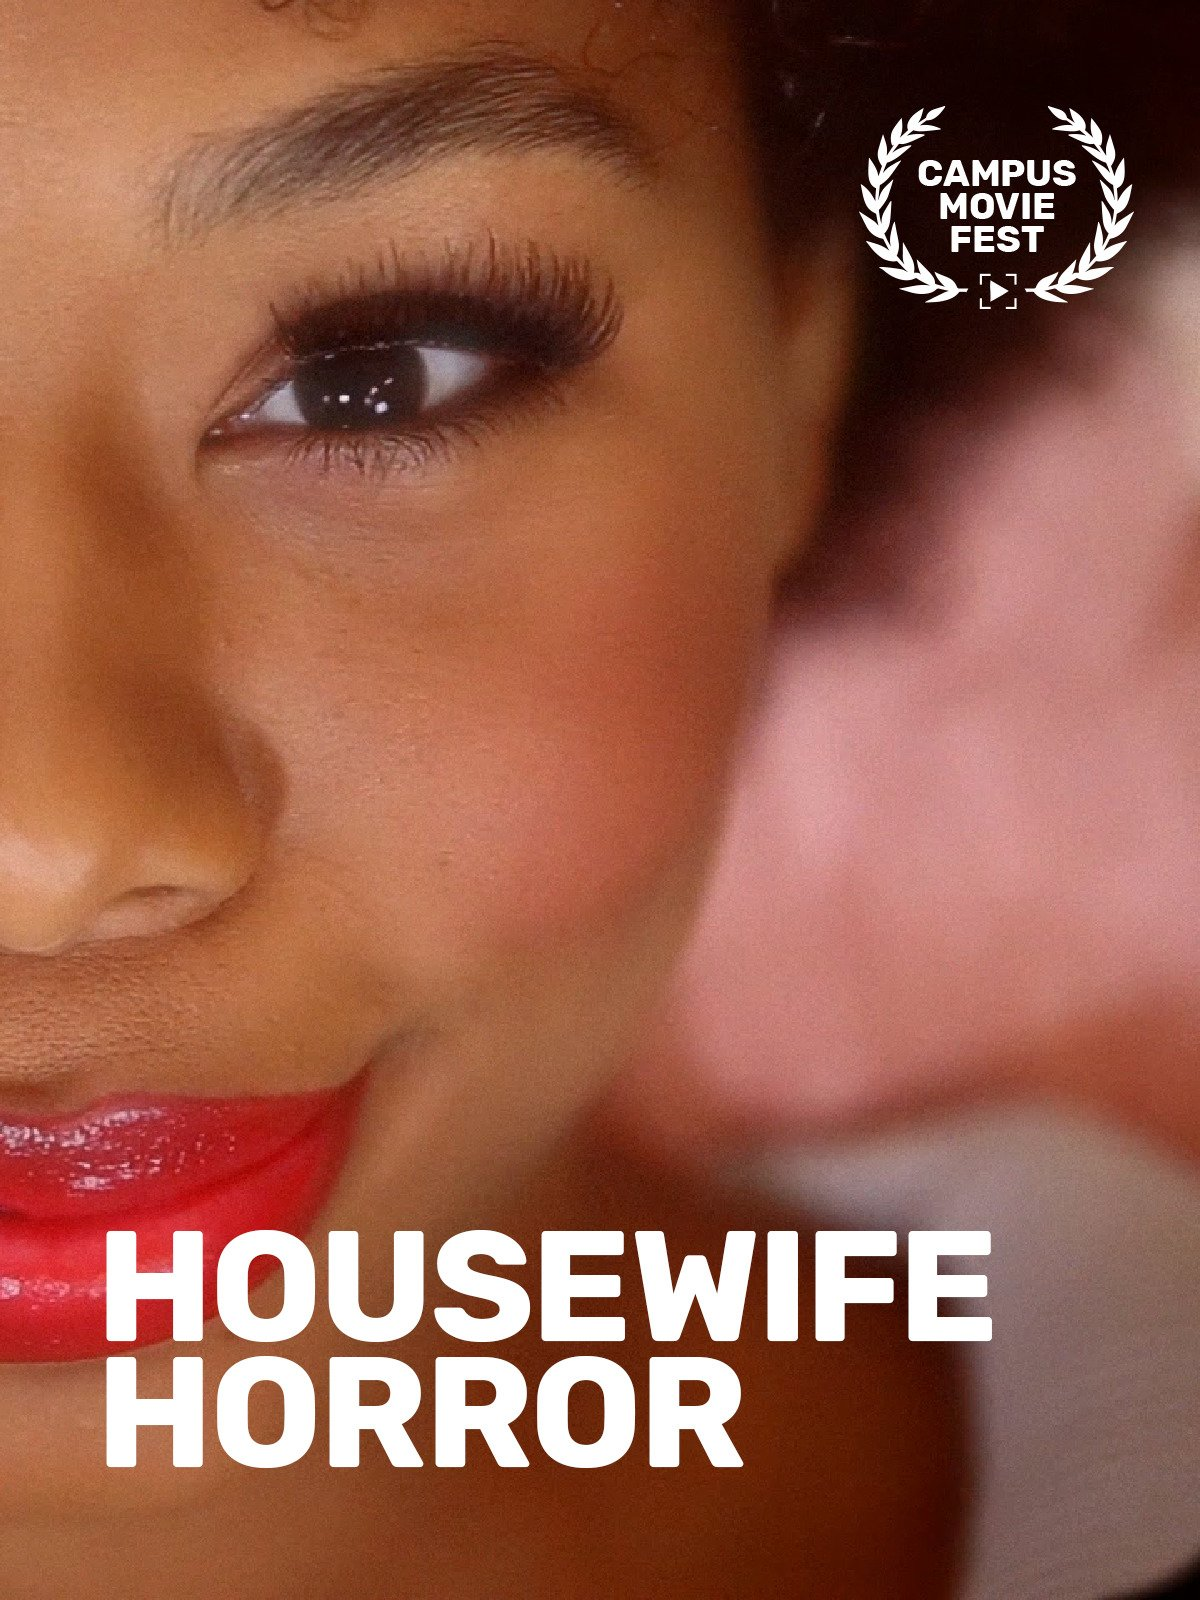 Housewife Horror